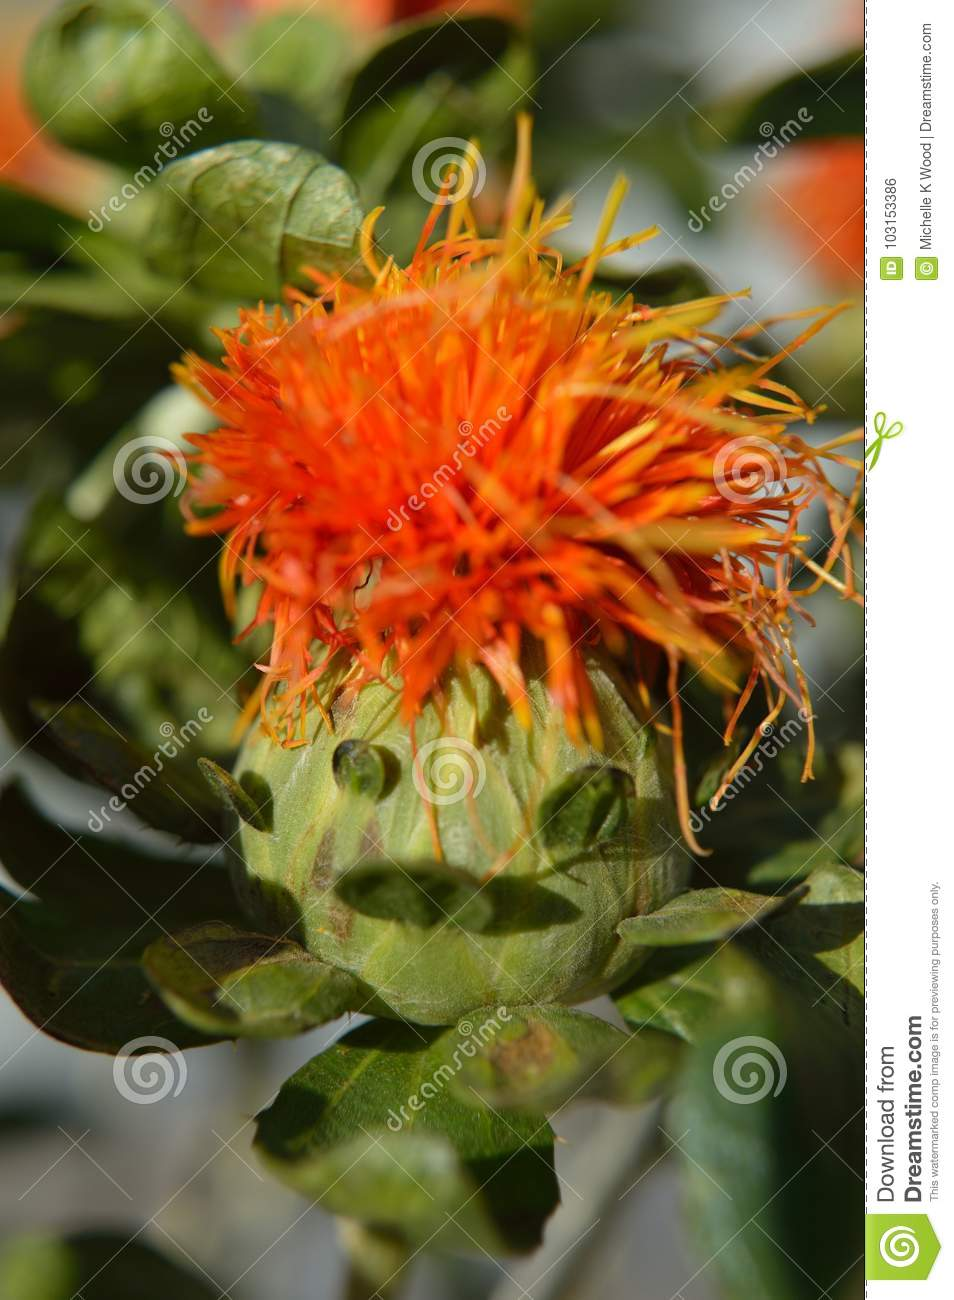 Funny face on a safflower blossom